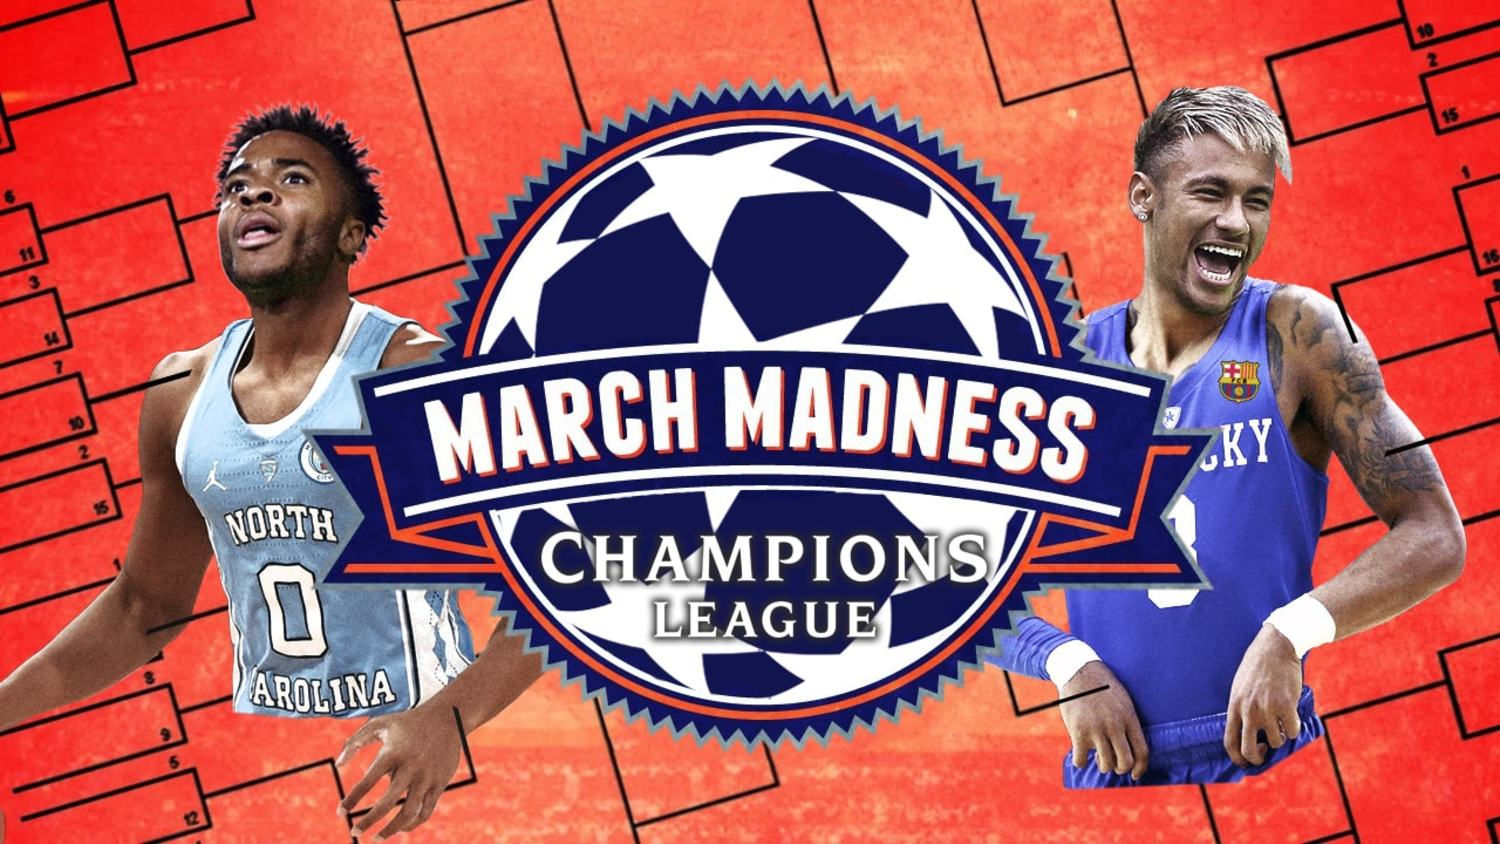 MARCH MADNESS: CHAMPIONS LEAGUE EDITION